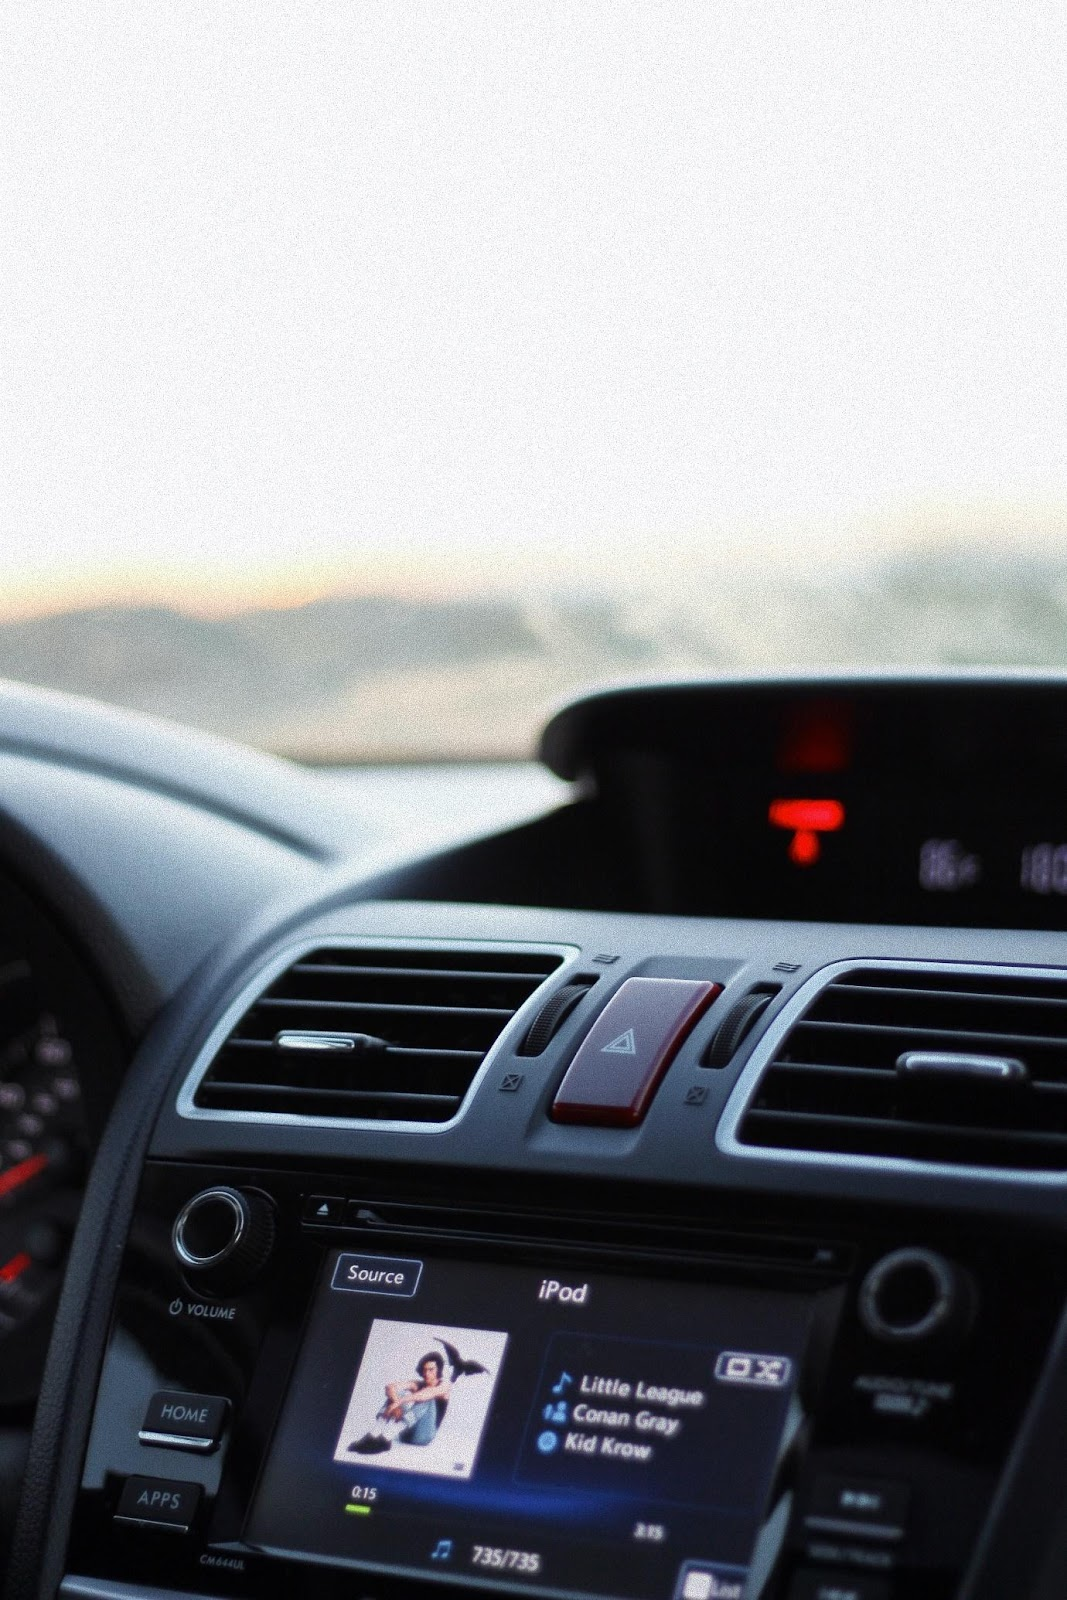 A picture containing text, car, device, control panel  Description automatically generated